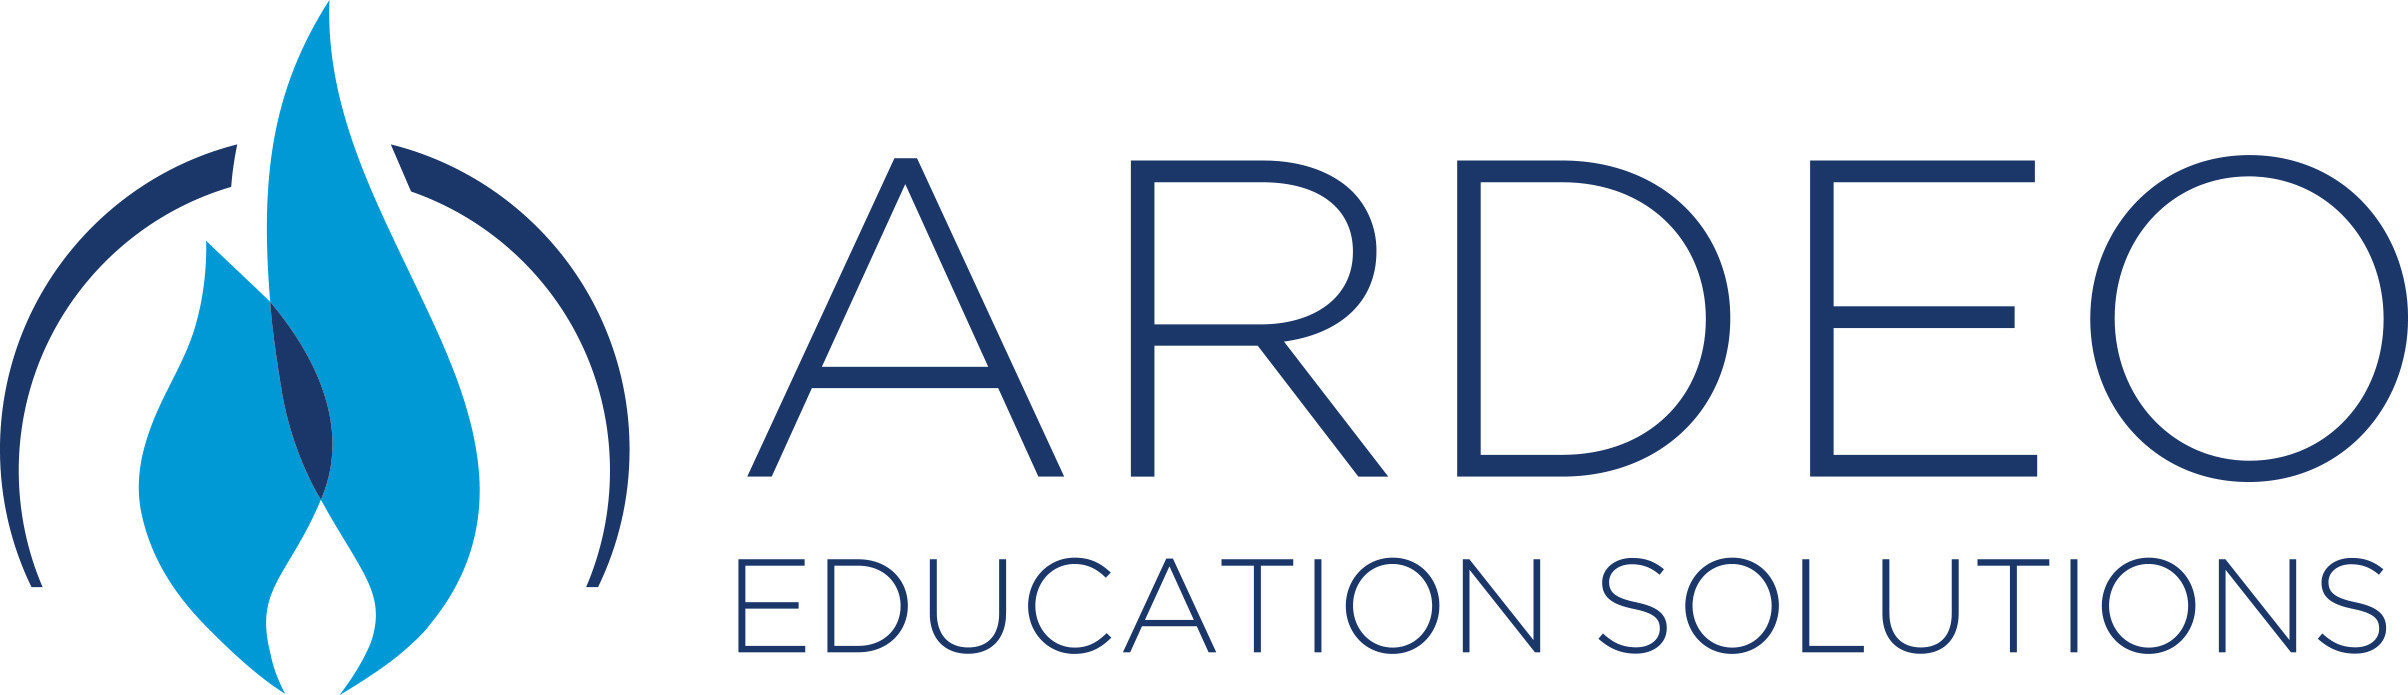 Ardeo Education Solutions Helps Improve Student Access to Higher Education